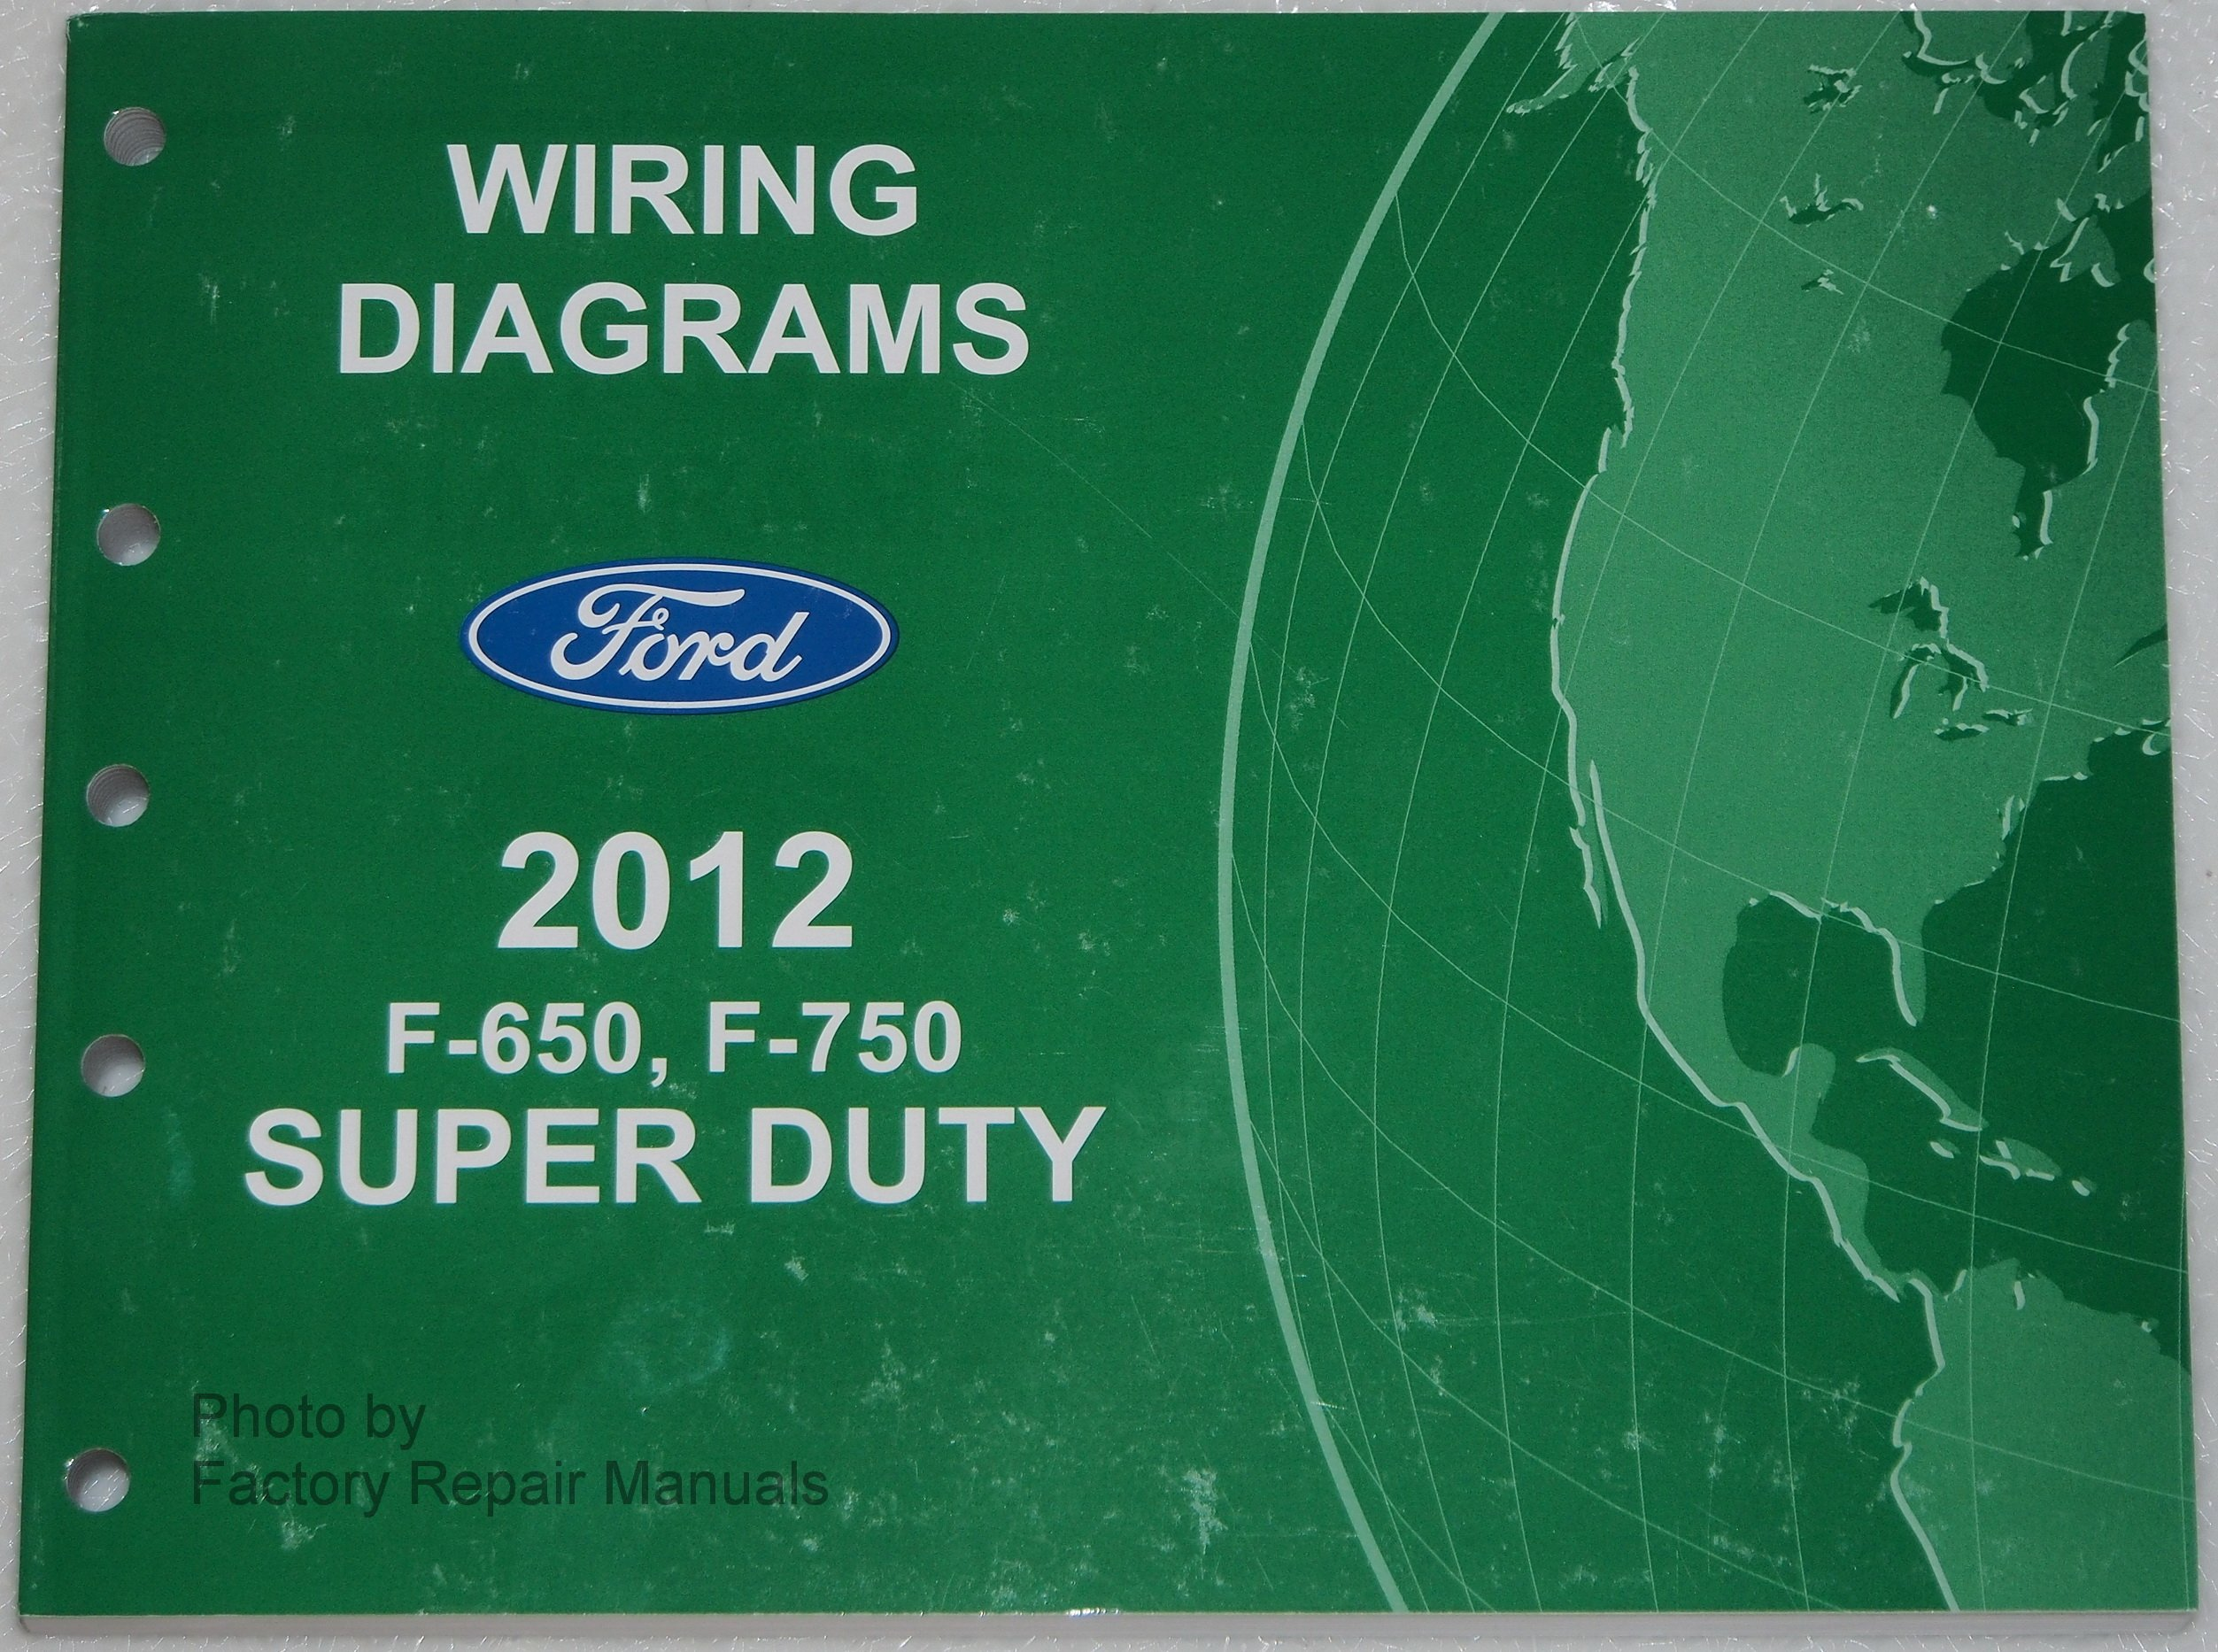 2012 F650/F750 WIRING DIAGRAM: Ford: Amazon.com: Books | Ford F650 Wiring Schematic |  | Amazon.com